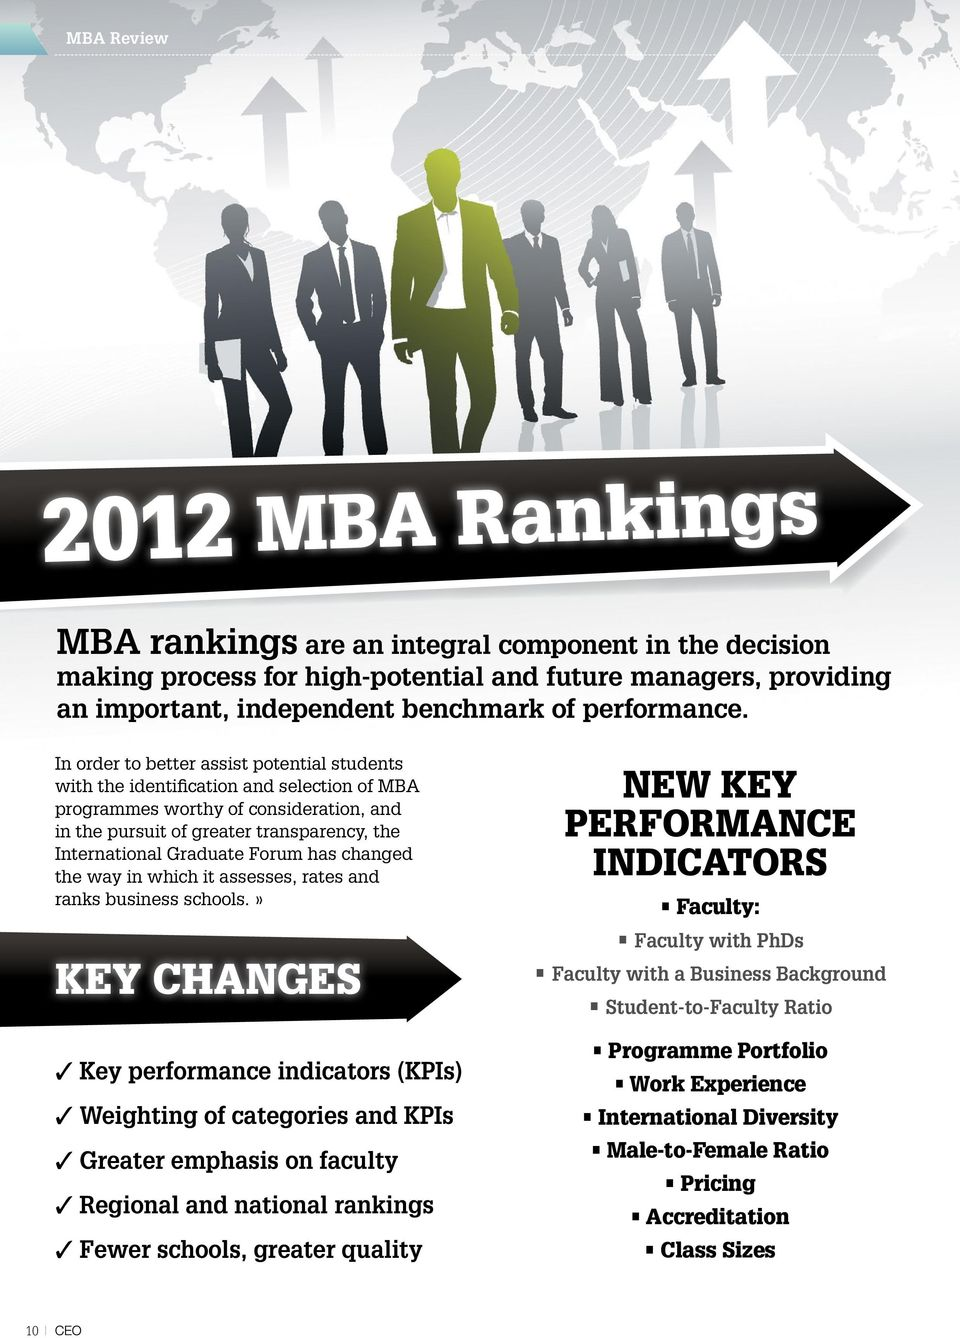 Forum has changed the way in which it assesses, rates and ranks business schools.